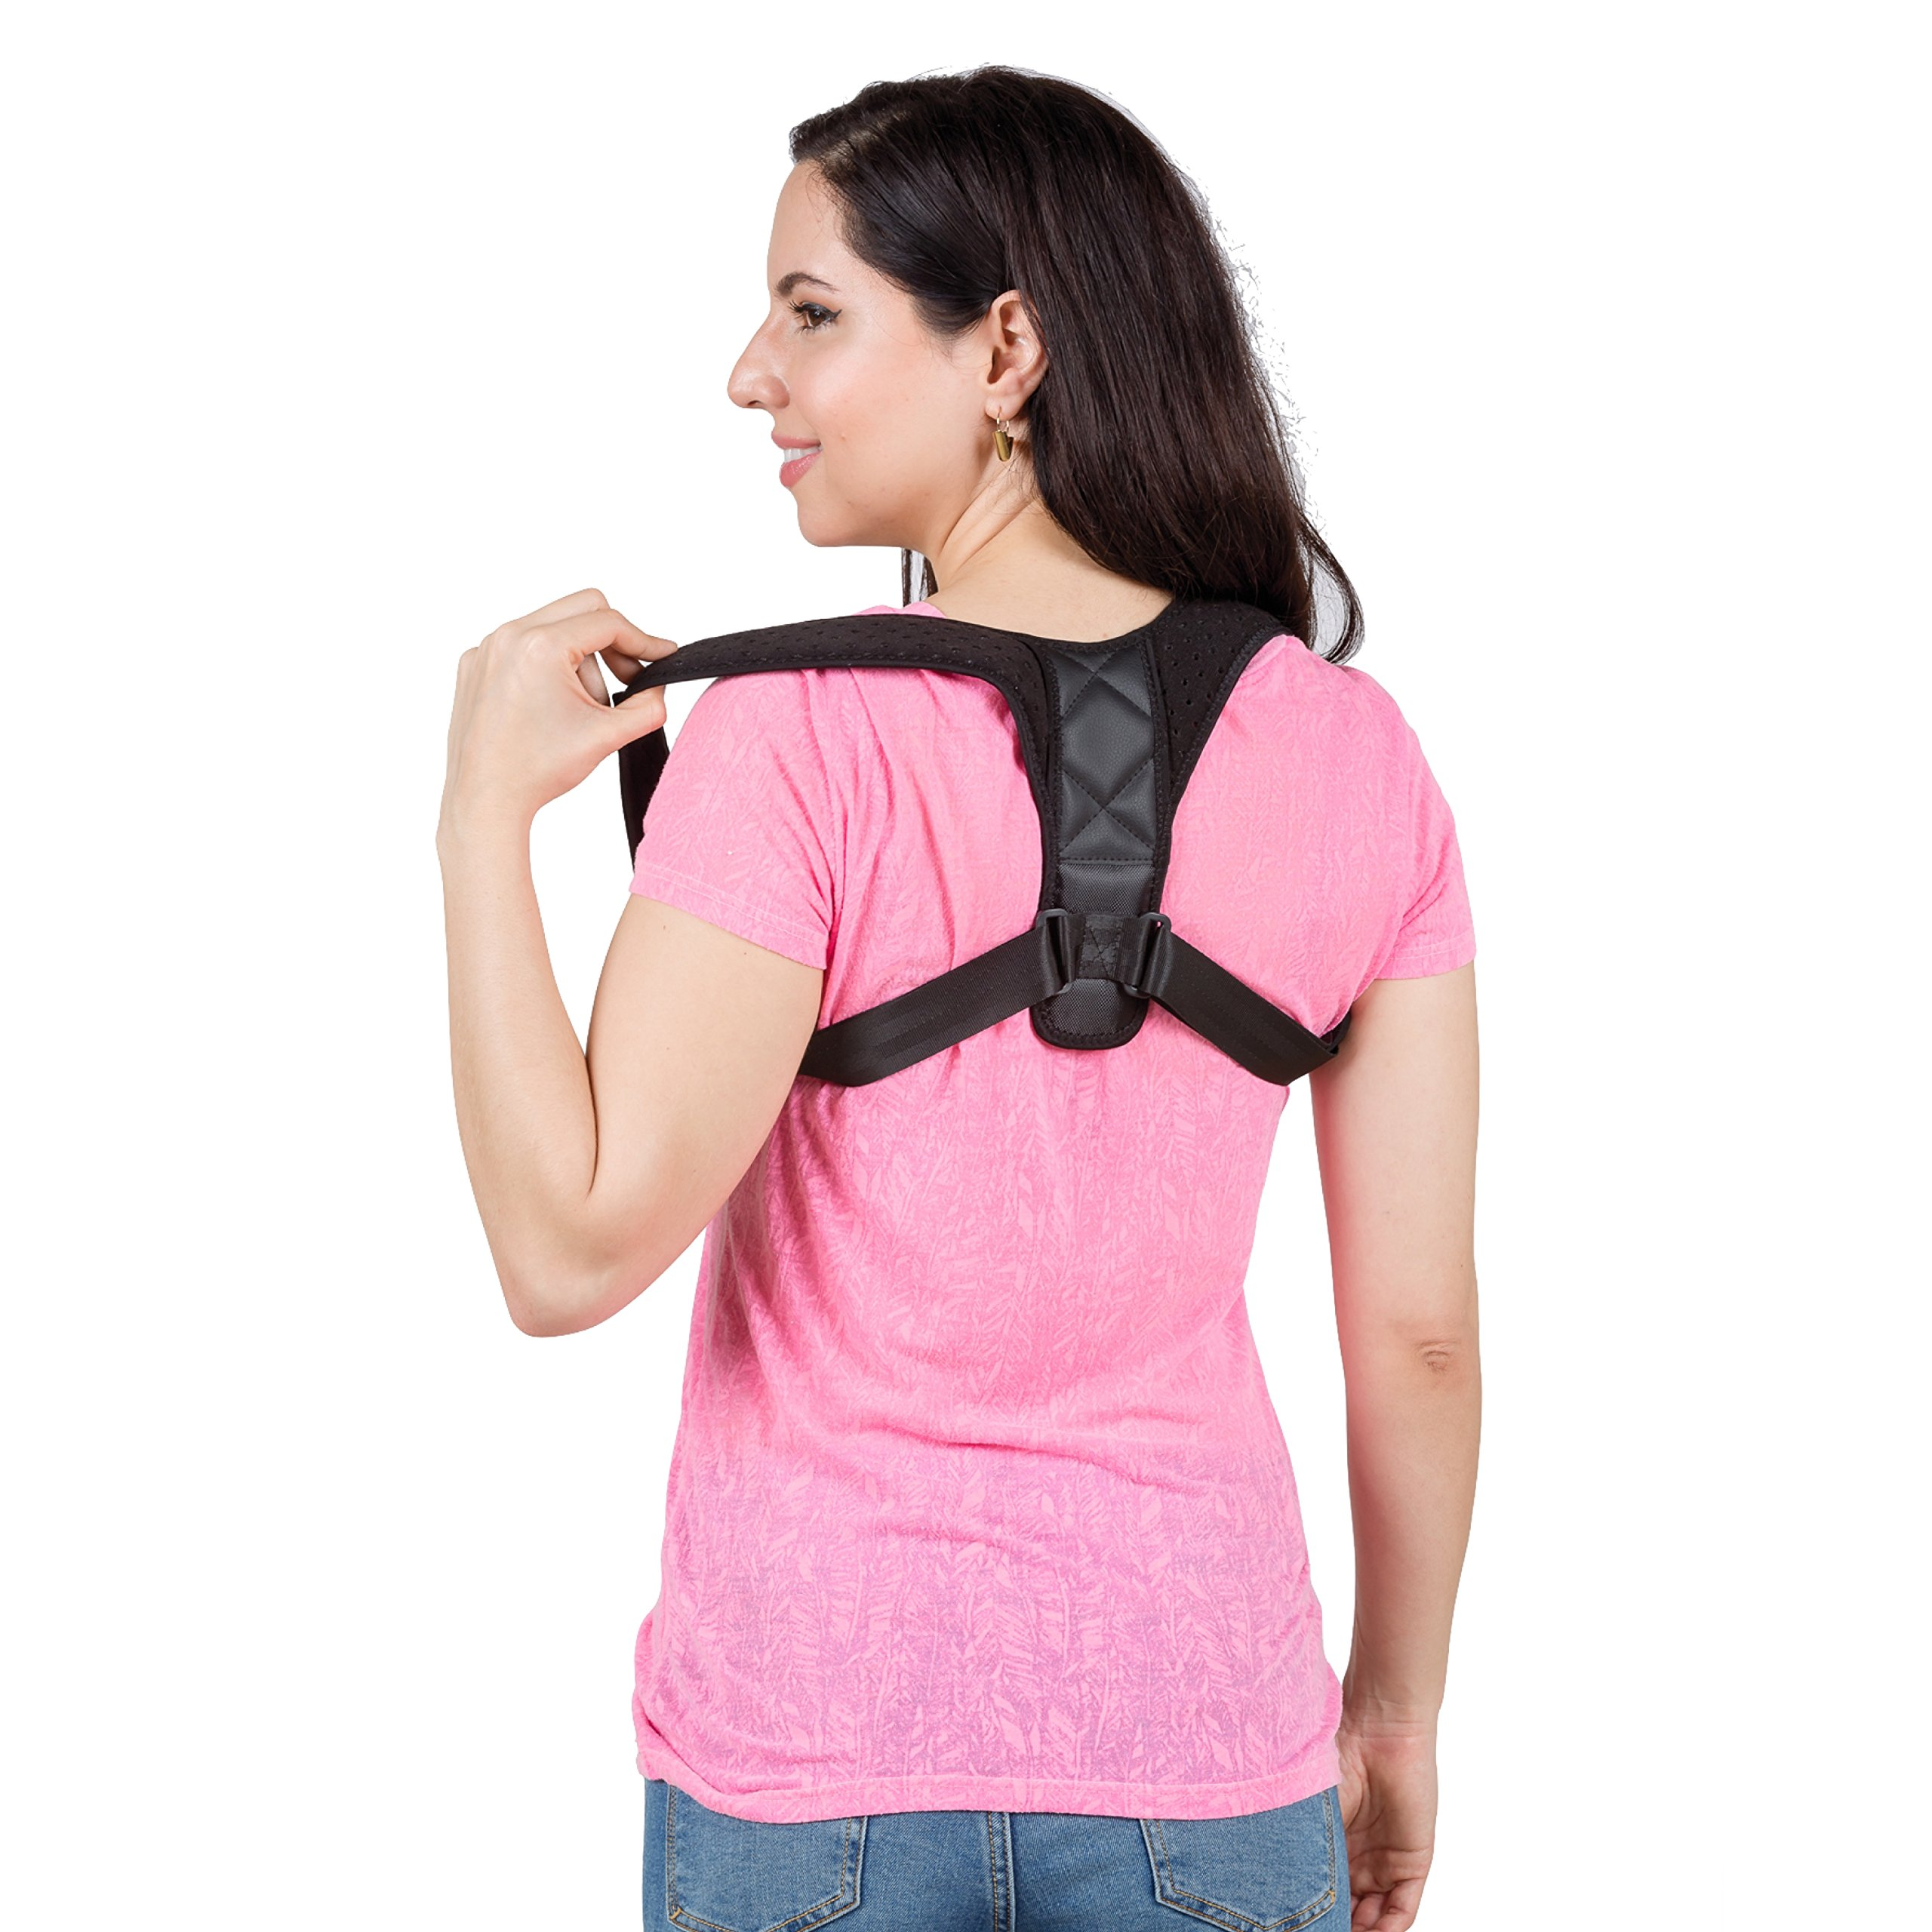 The Favel Back Brace Posture Corrector for Women & Men - Back Support to Relief Pain from Injury or Medical Problems